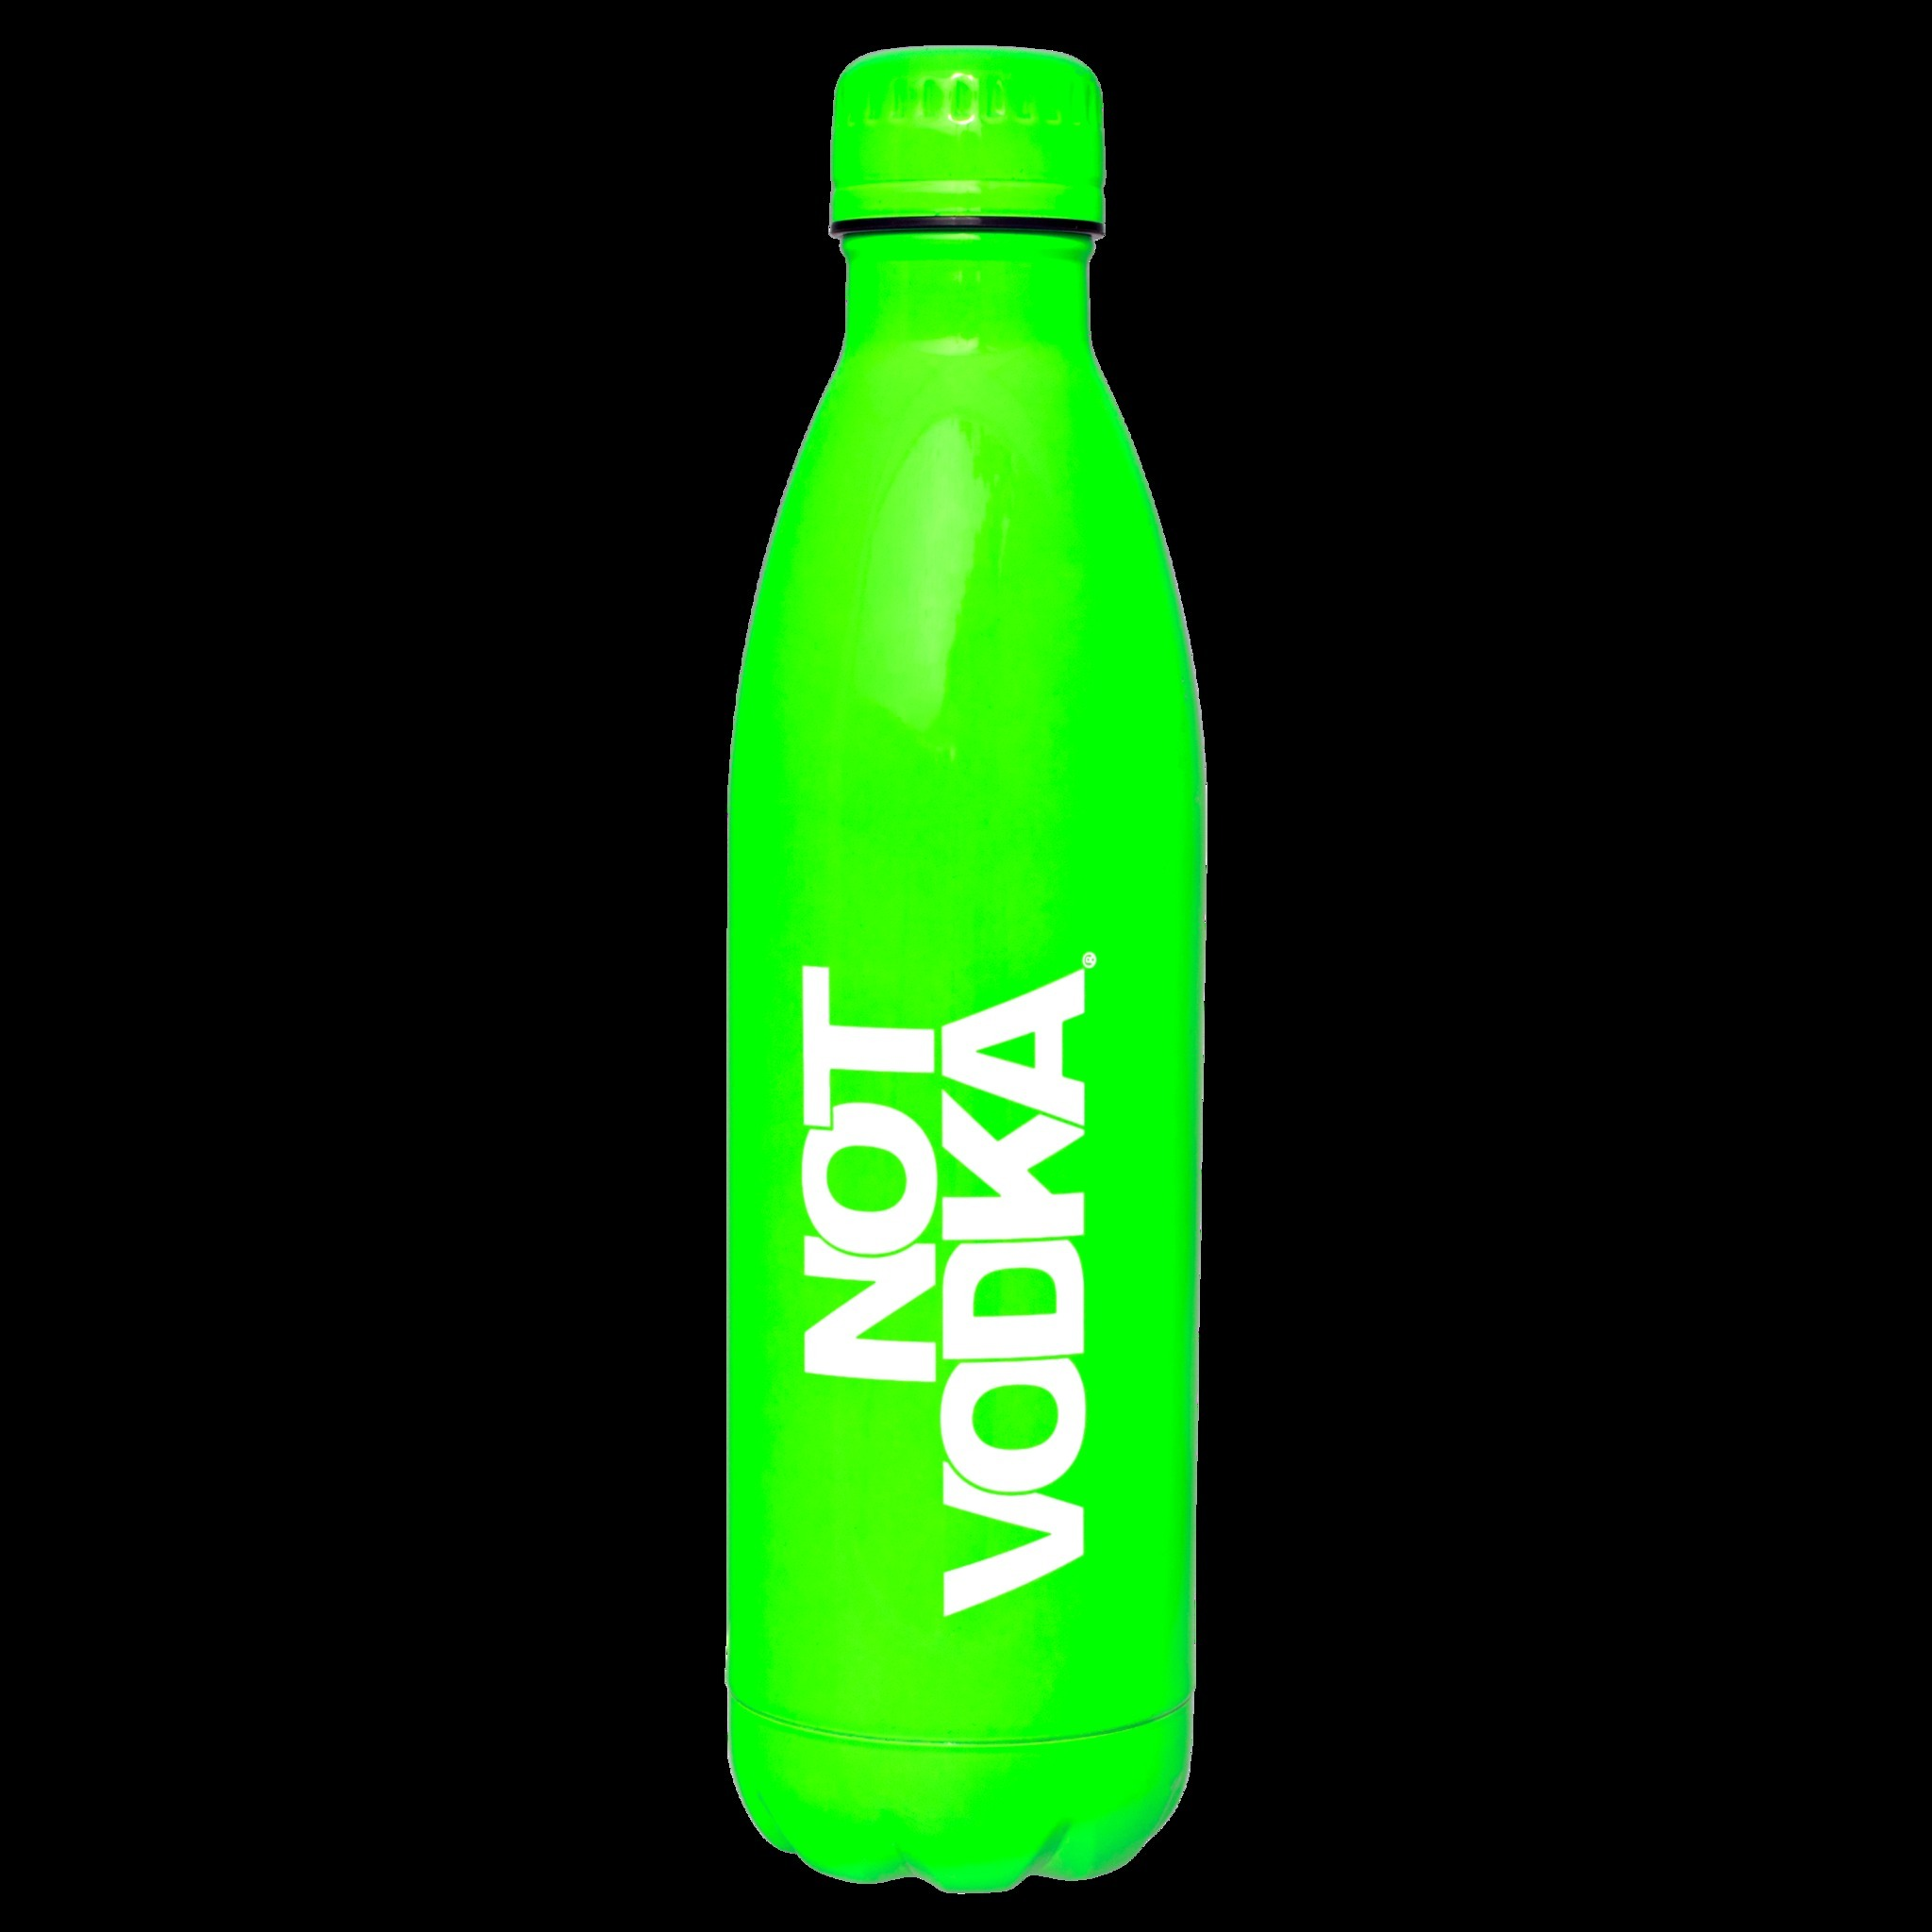 ☆NOT VODKA☆ Bullet Bottle: Neon Colors